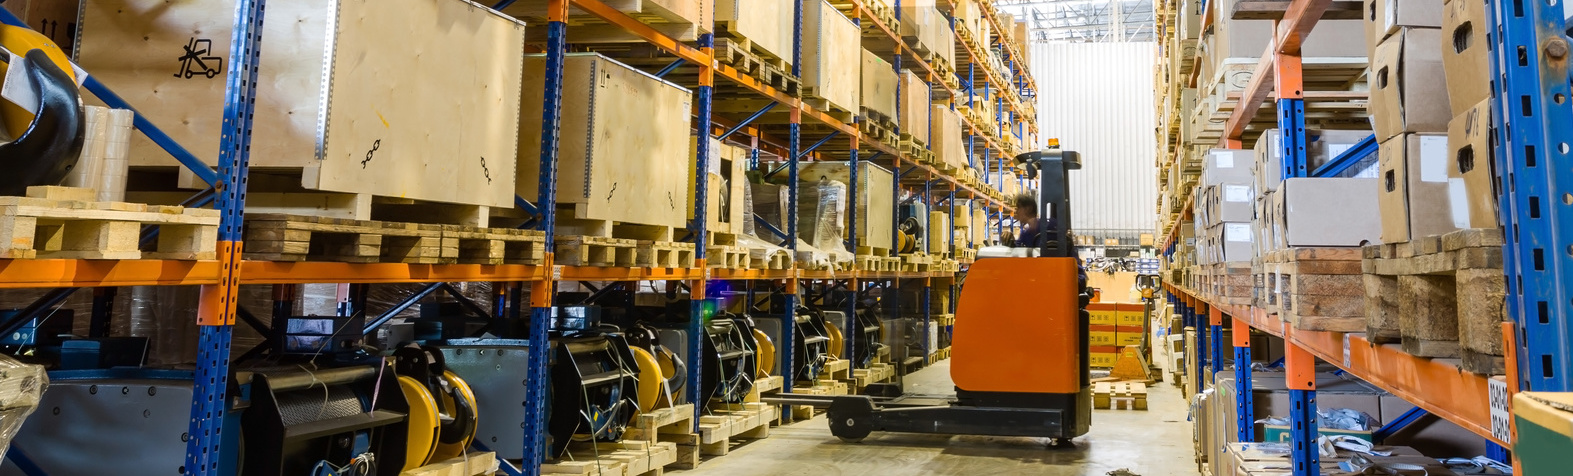 Top-floor to Warehouse Shop Floor – 4 Benefits of Data Integration